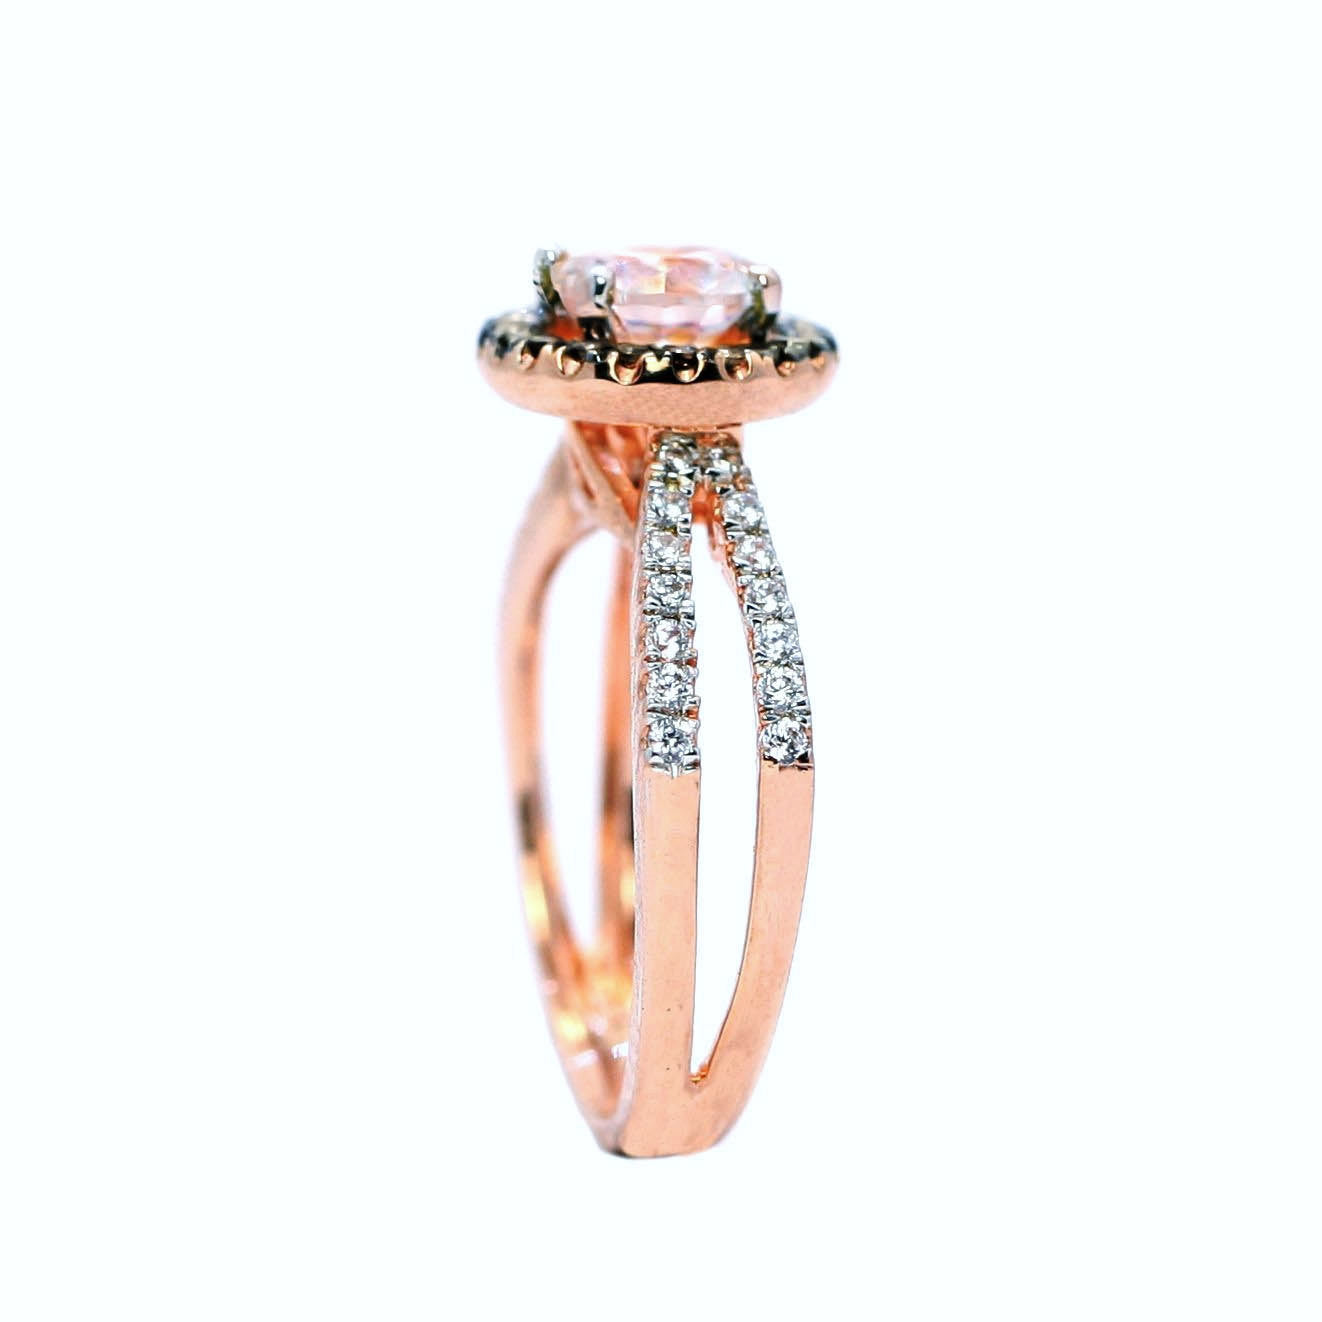 Floating Halo Engagement Ring, Rose Gold, 6.5 mm Morganite Center Stone, White & Fancy Brown Diamond Accent Stones,Anniversary - MG94656